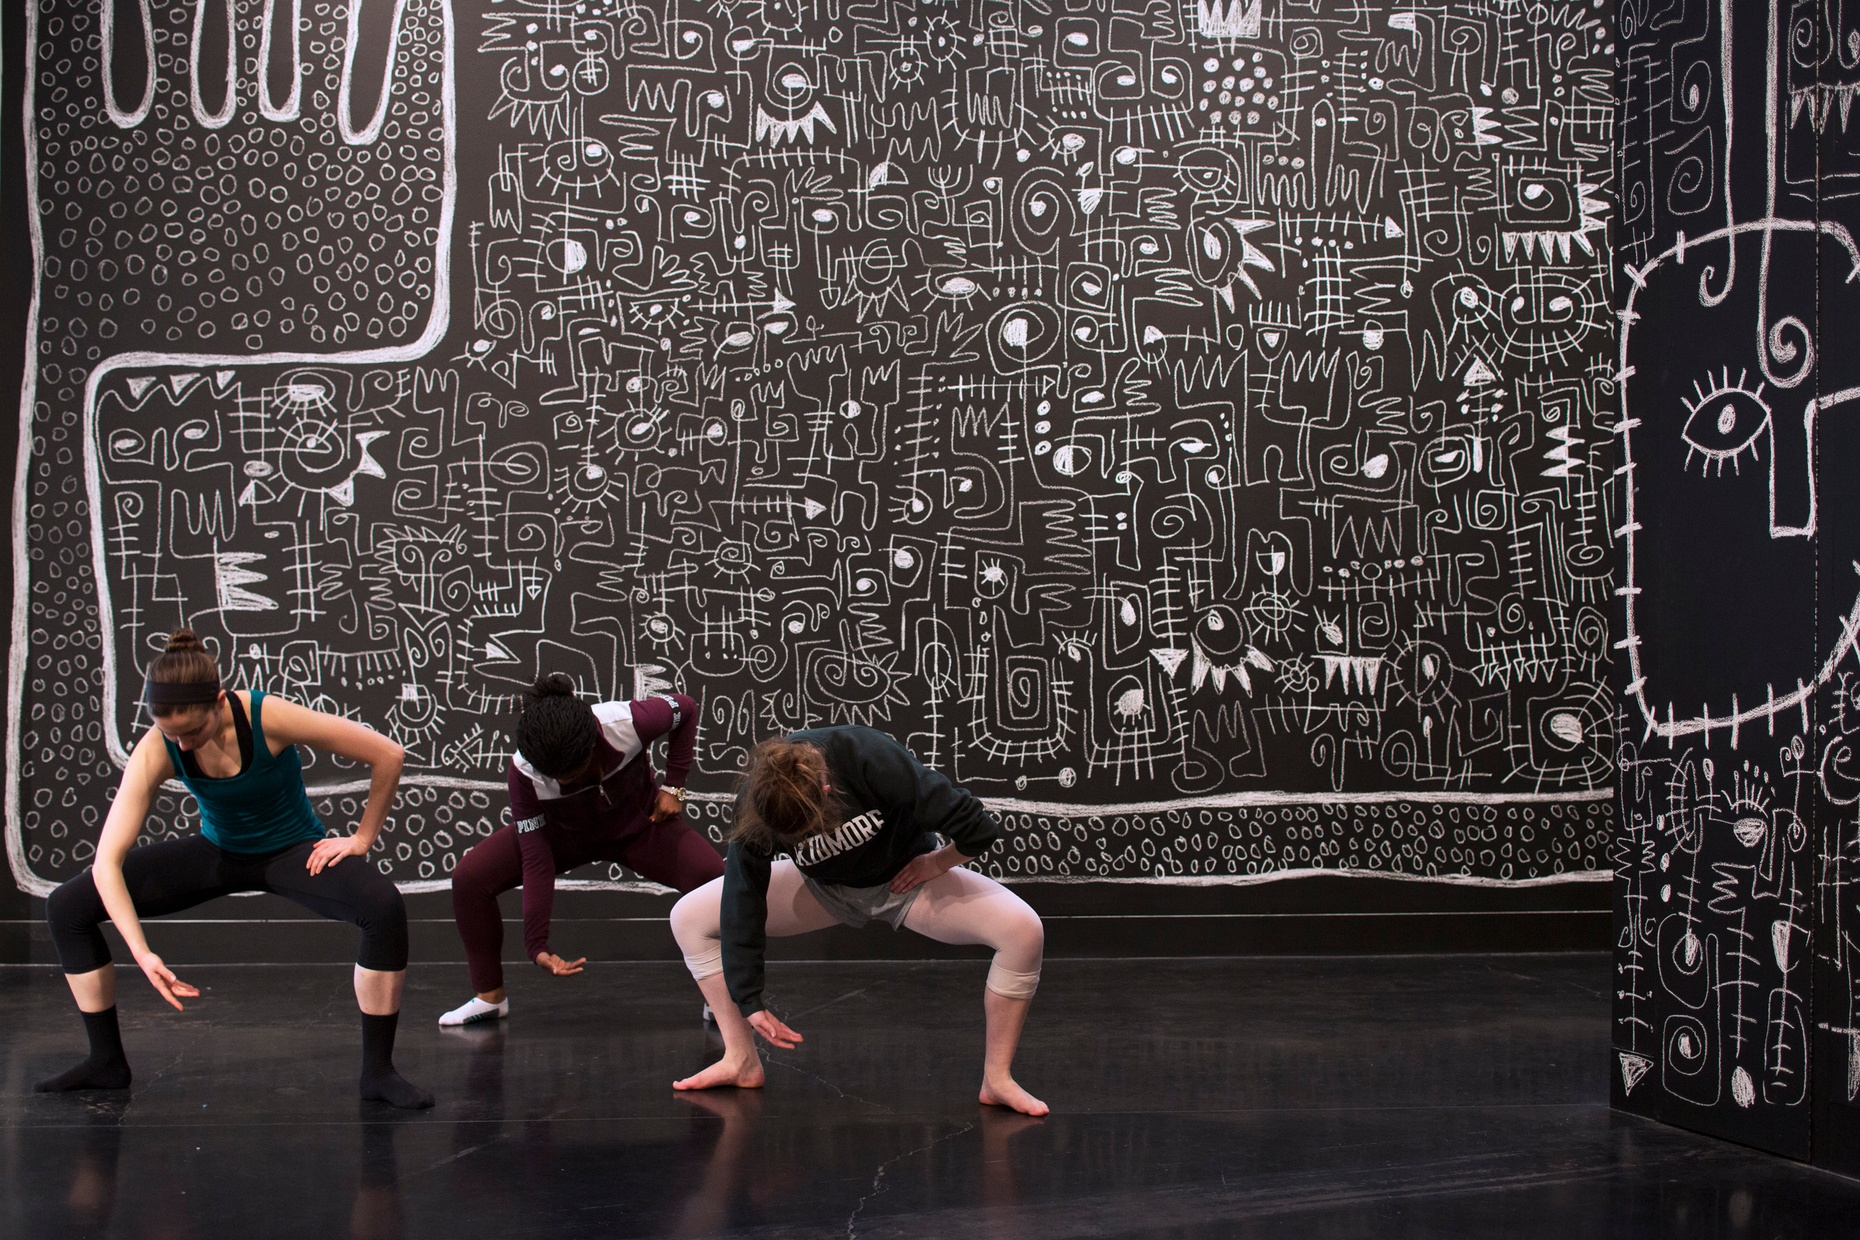 Three female dancers bend in a squat in front of a charcoal background covered in white doodles.